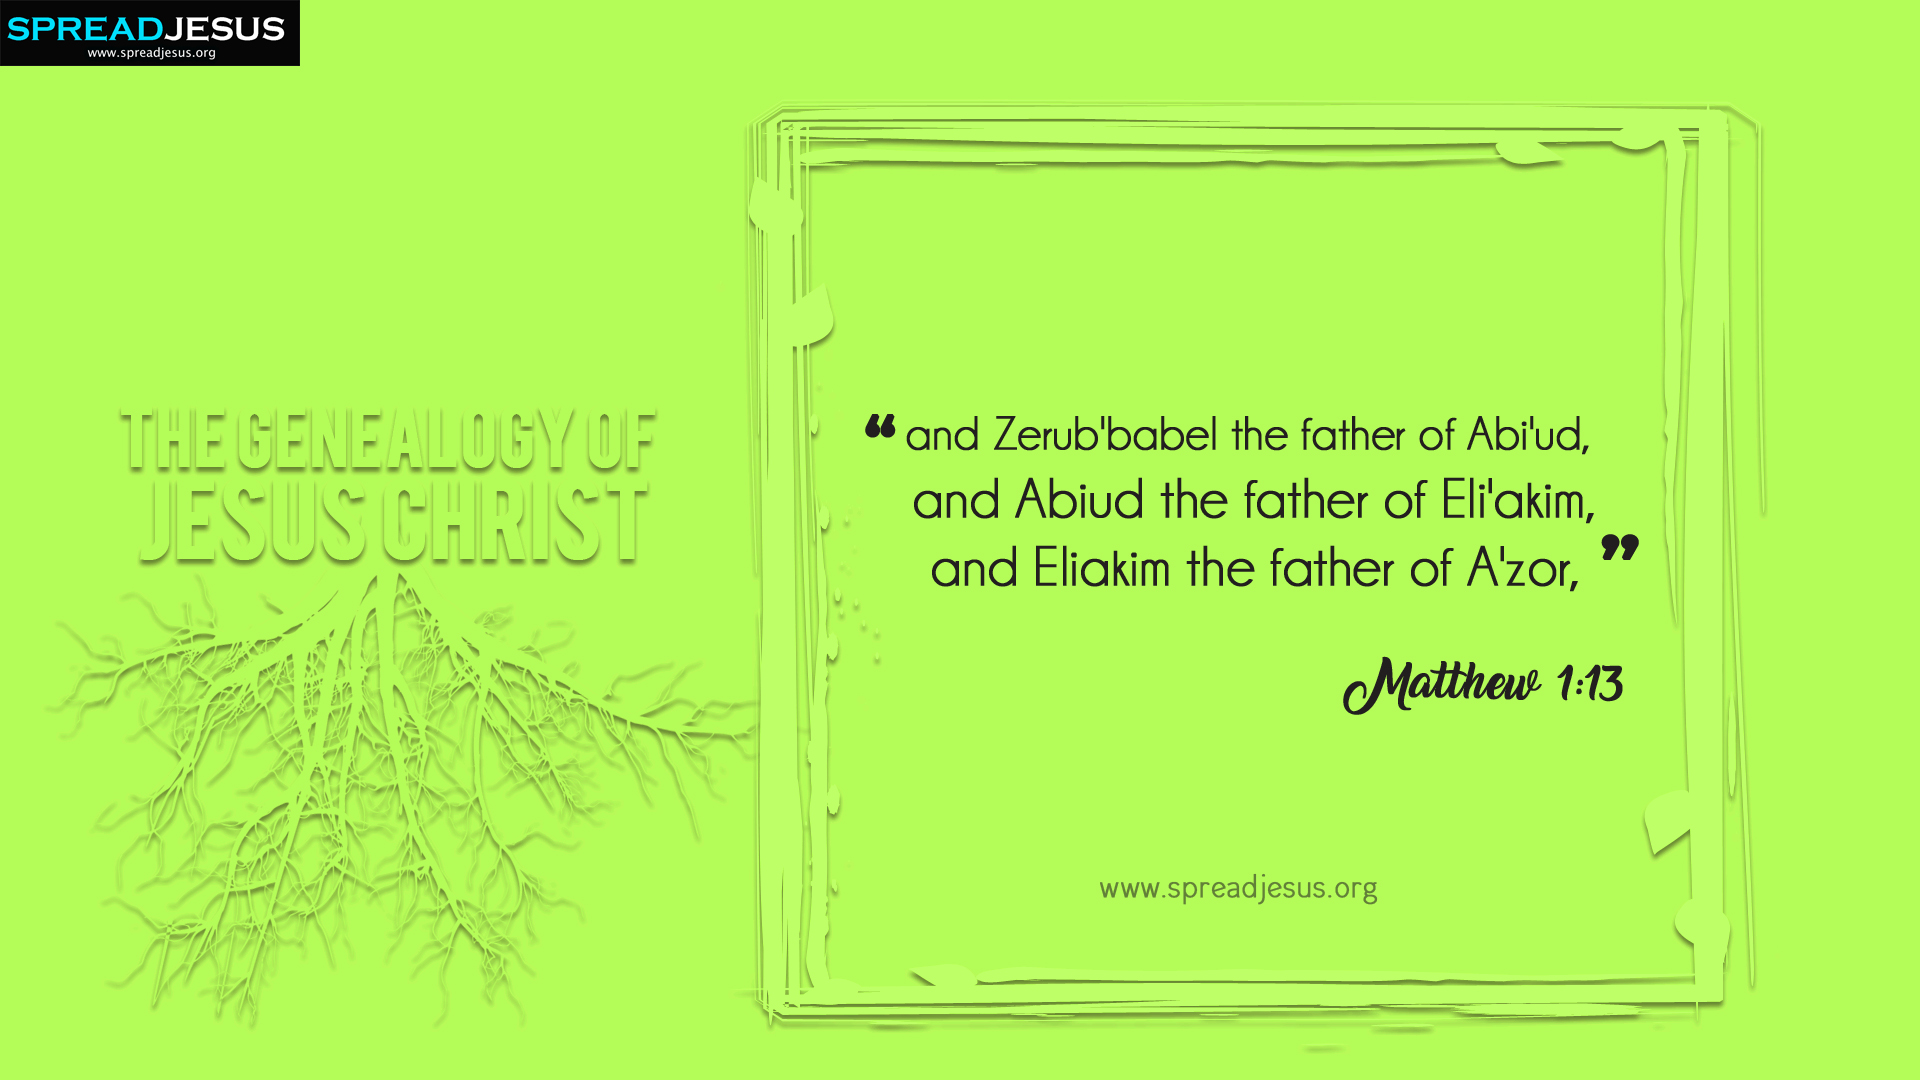 The Genealogy of Jesus Christ Matthew 1:13 HD-Wallpapers